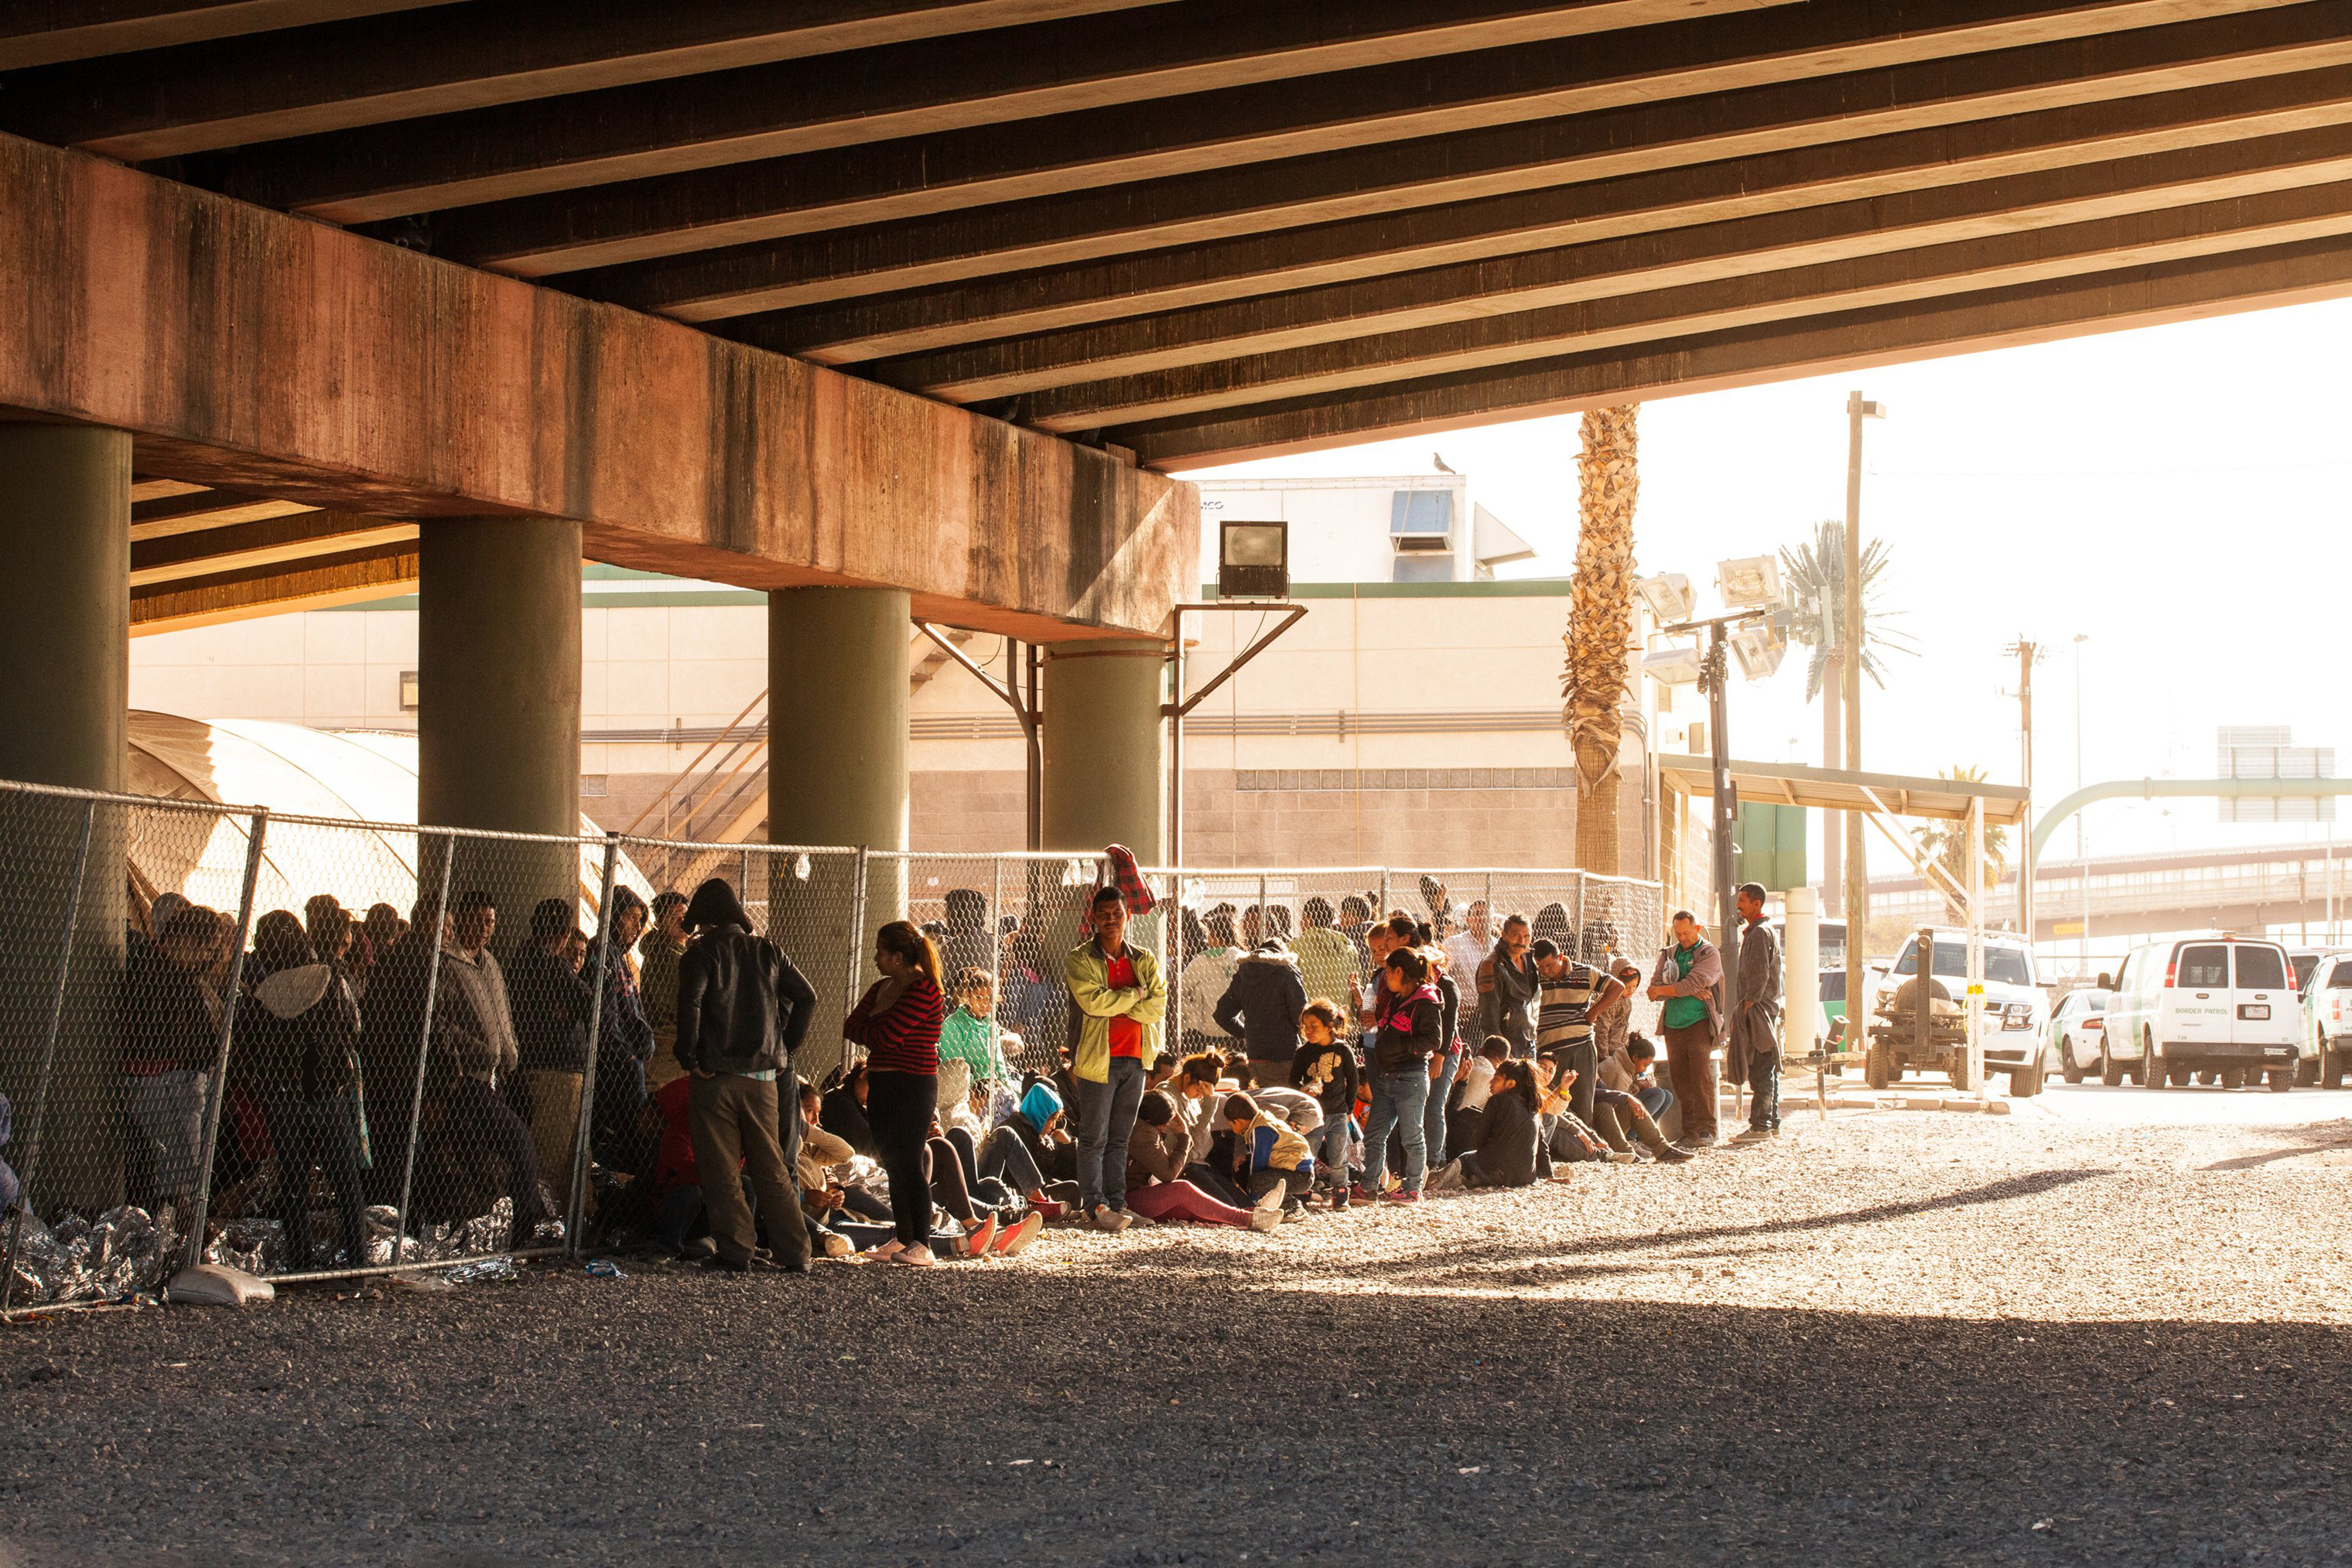 Migrants held in temporary fencing underneath the Paso Del Norte Bridge await processing on March 28, 2019 in El Paso, Texas.